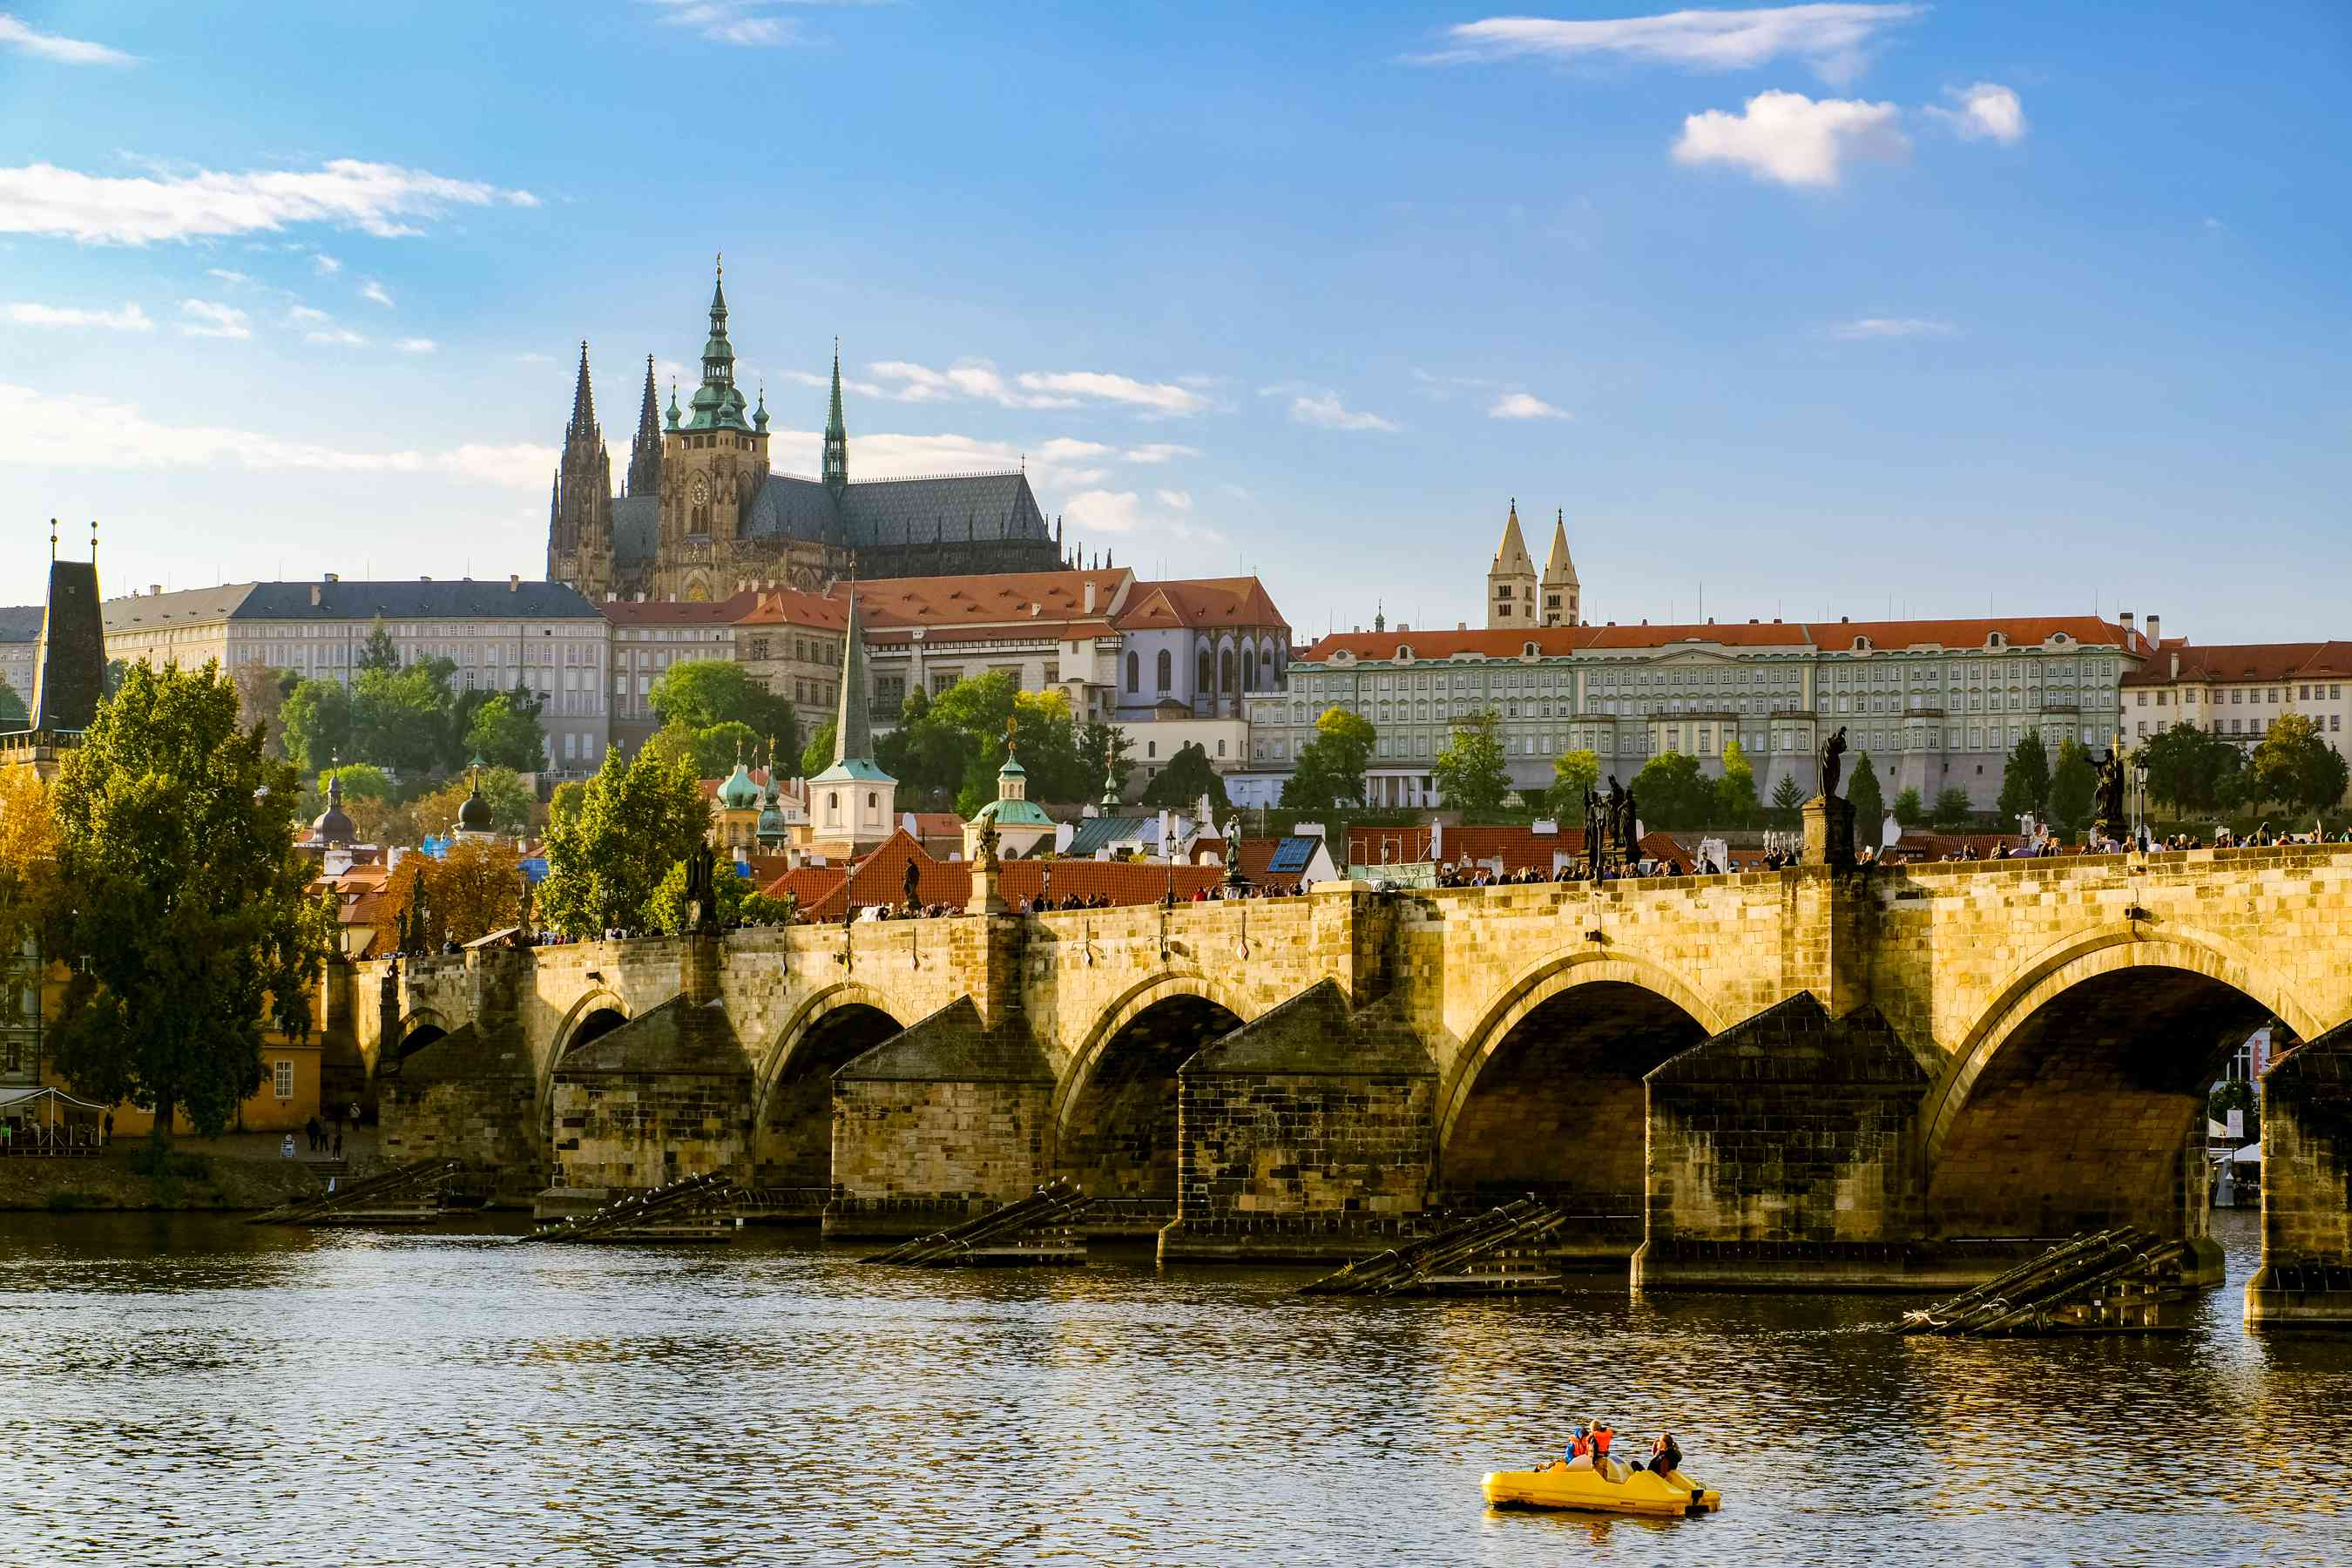 View of the Charles Bridge with the Prague Castle up on the hill behind it